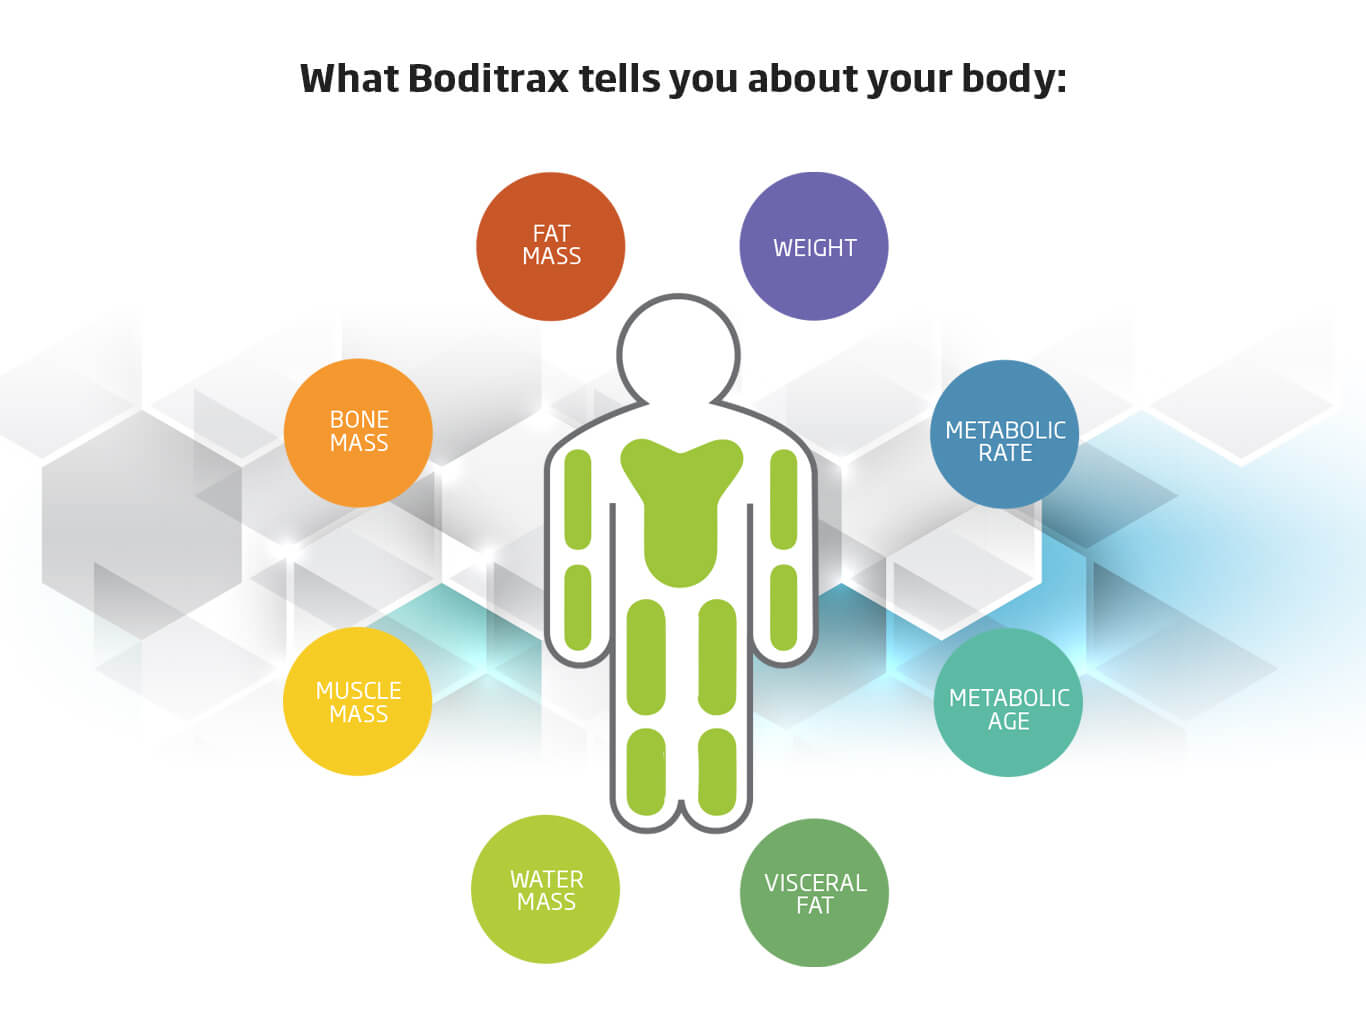 Boditrax benefits and fitness tool